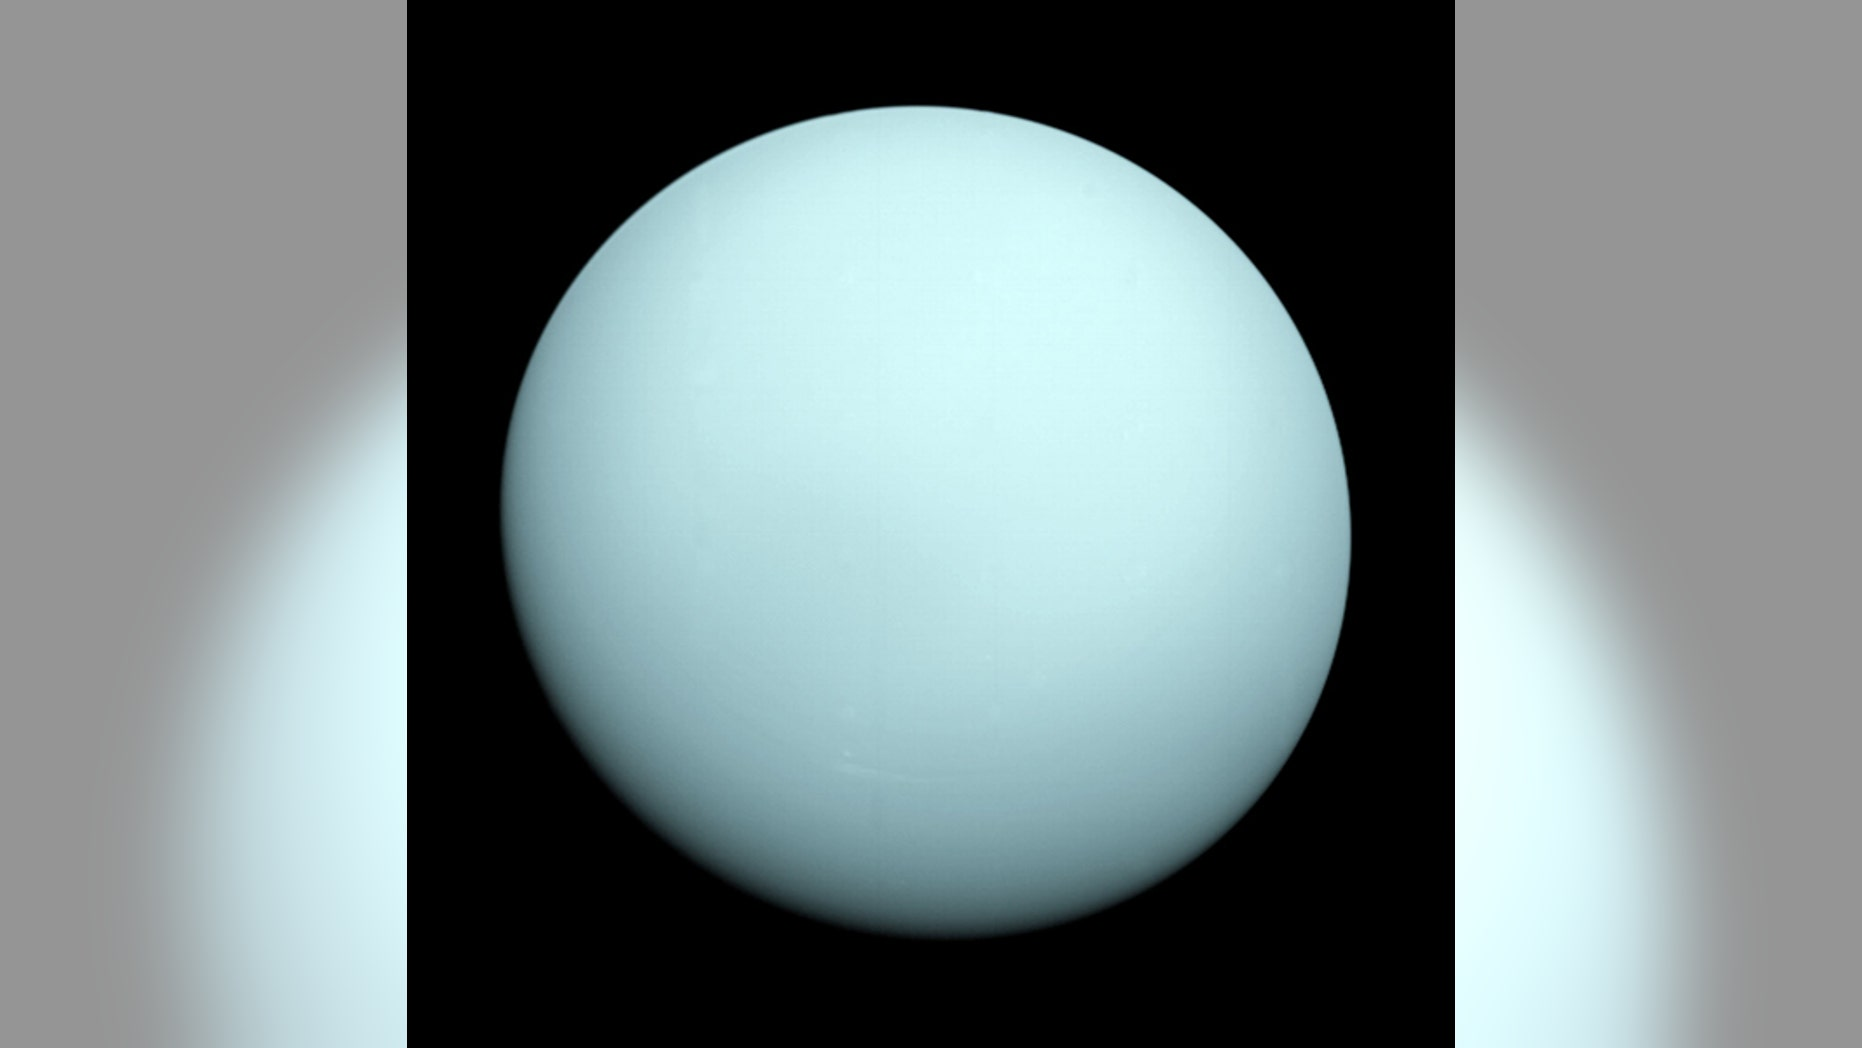 Uranus As Seen by Voyager 2